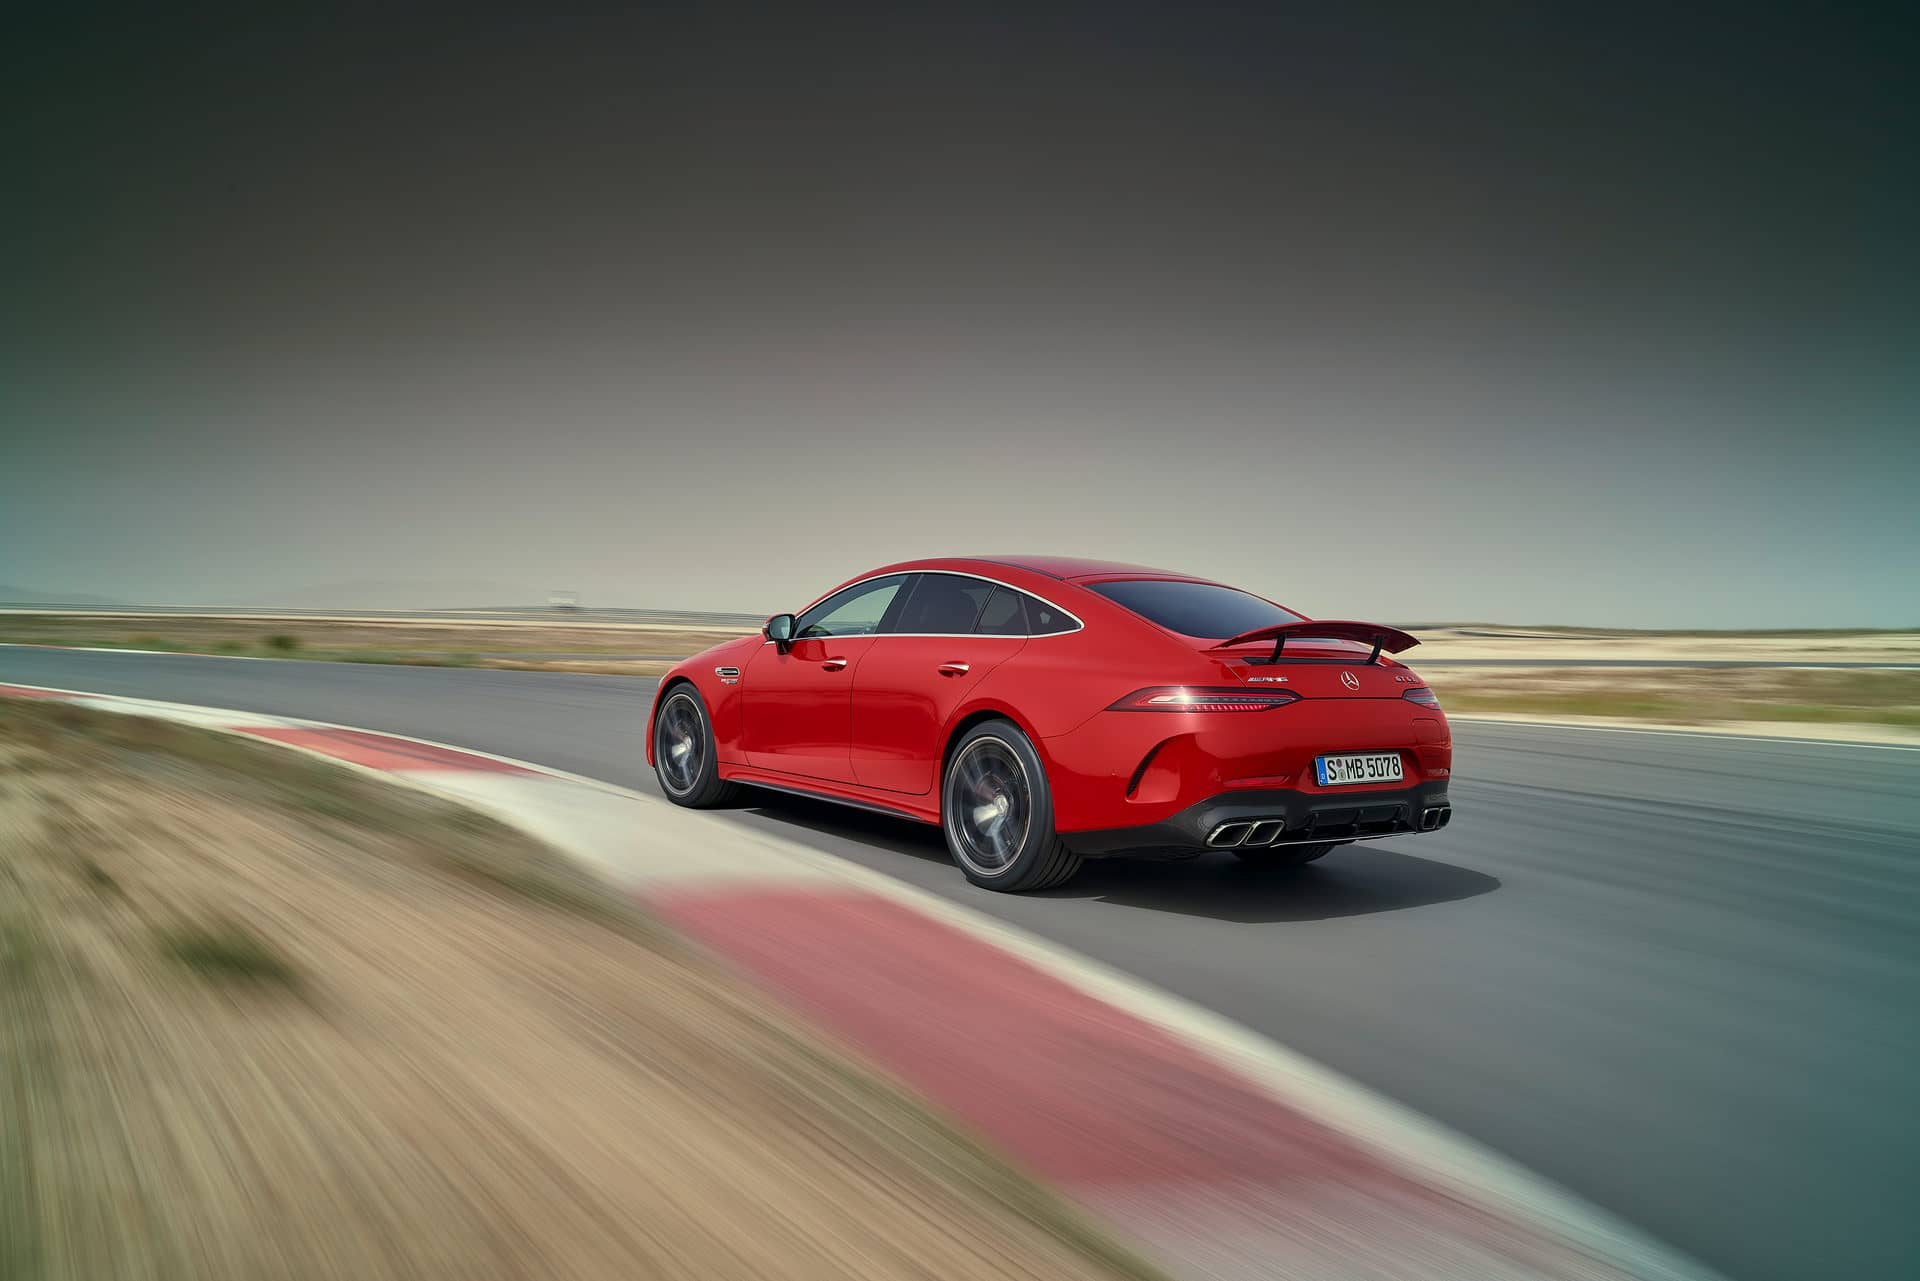 mercedes-amg gt 63 s eperformance (5)